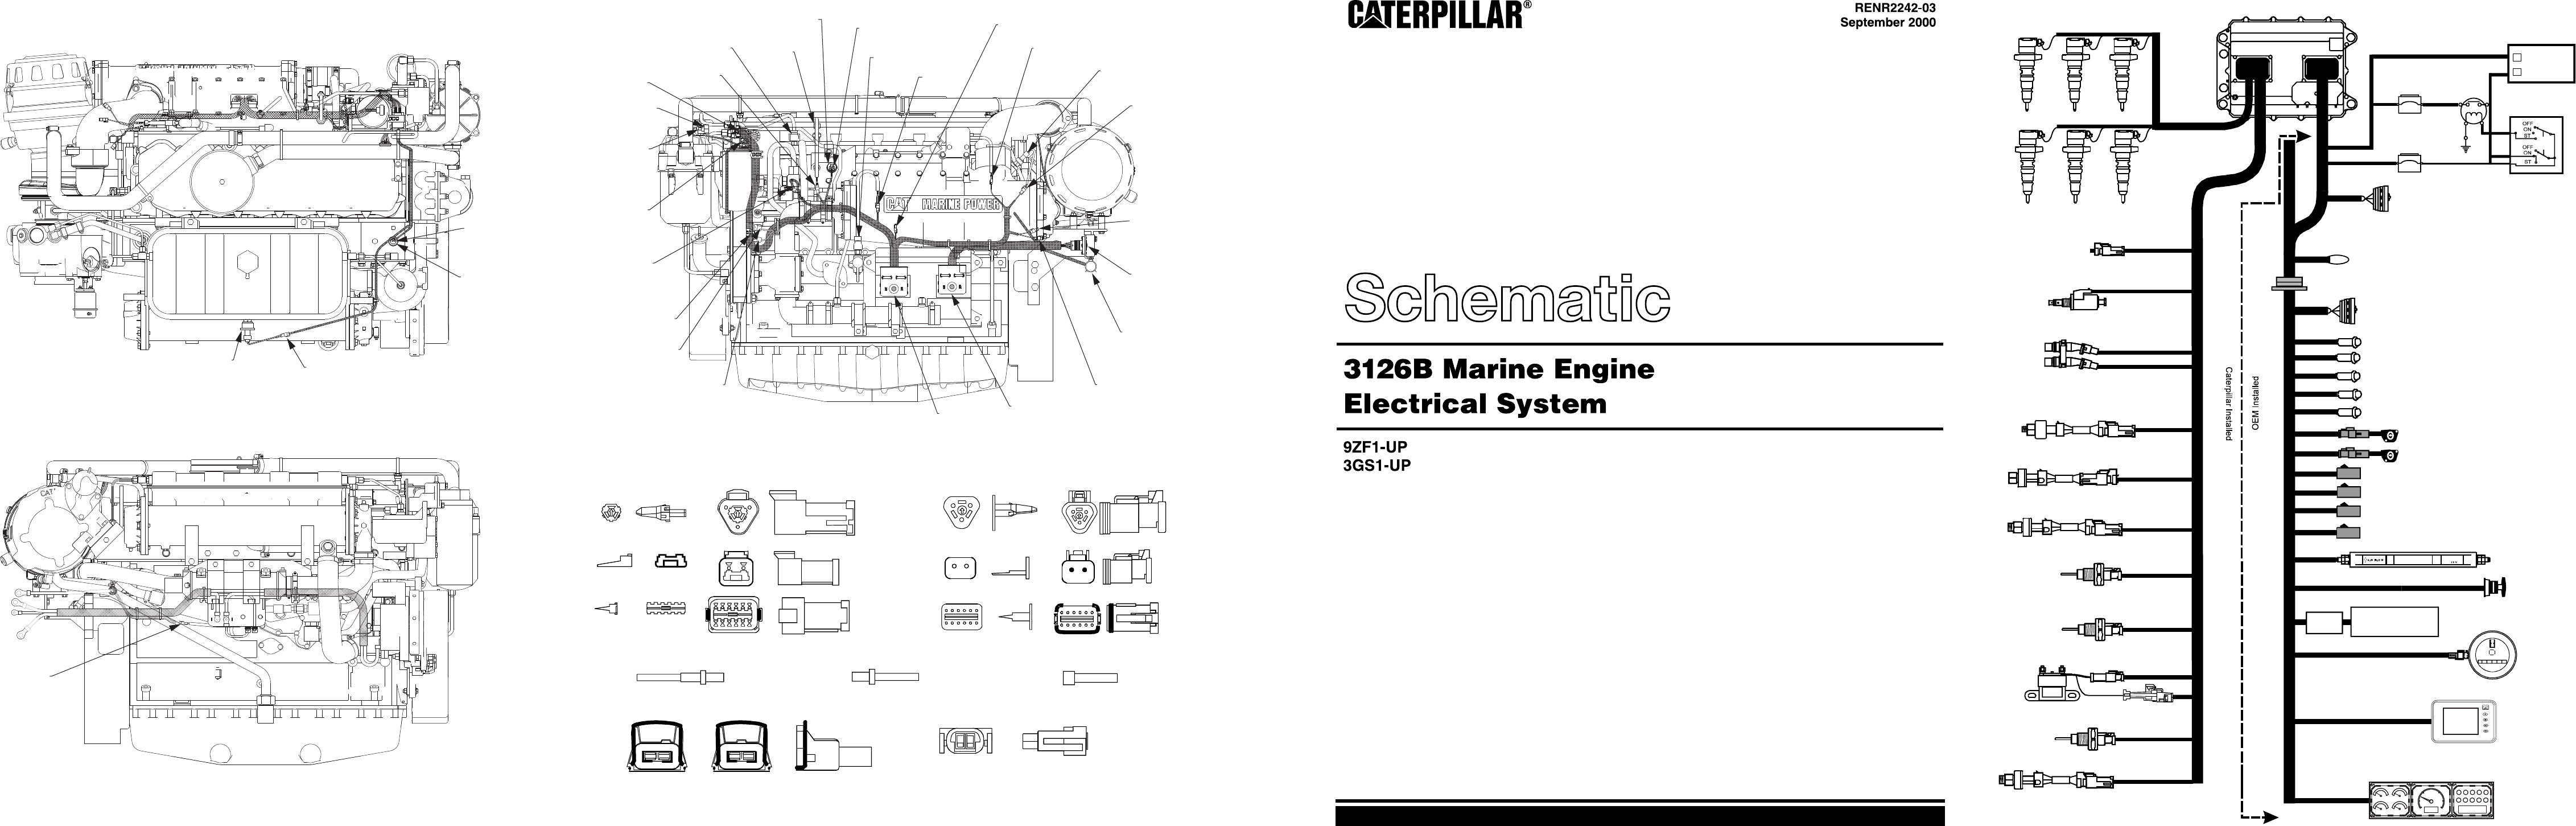 Cat 3126 Engine Parts Diagram | Repair Manual